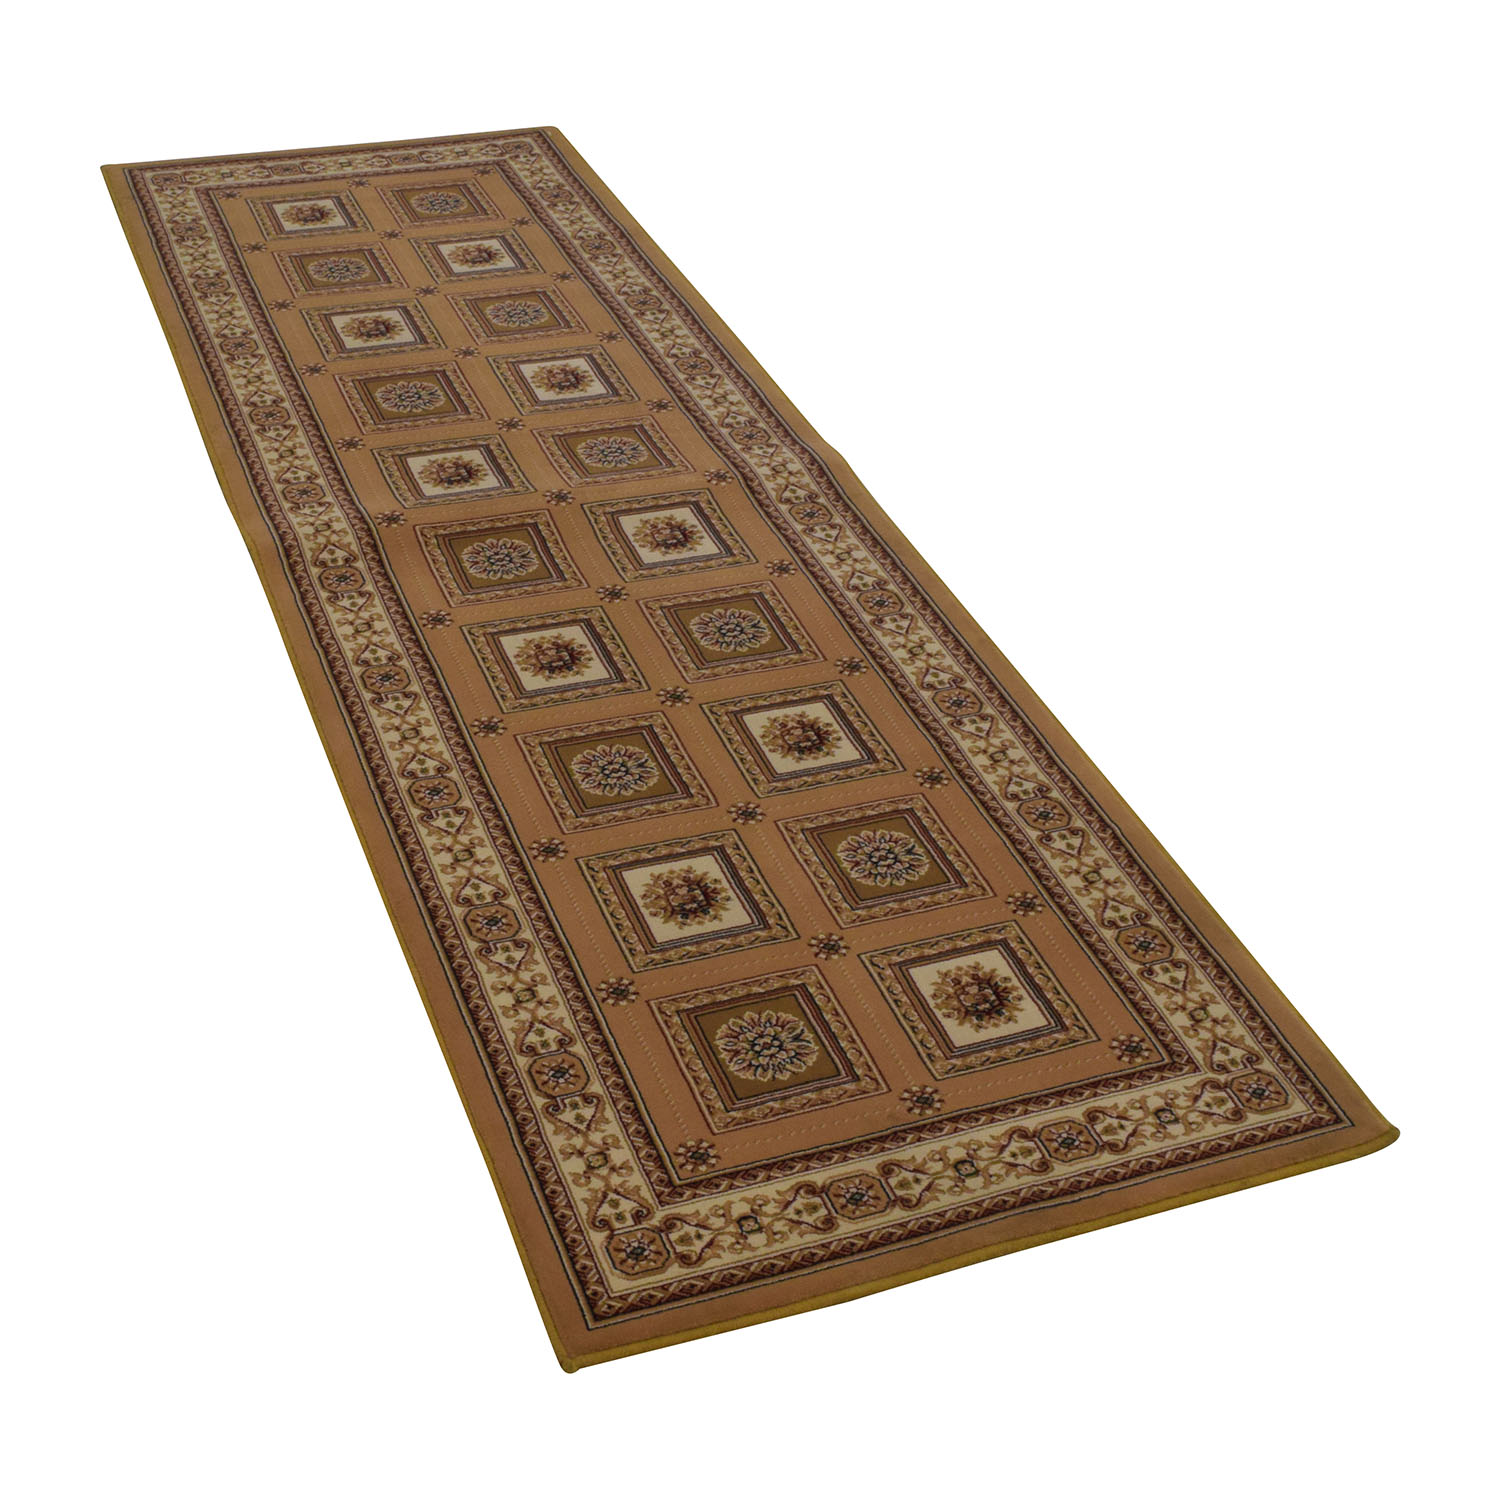 Regency Regency Persian Tan 27 x 76 Rug Runner on sale